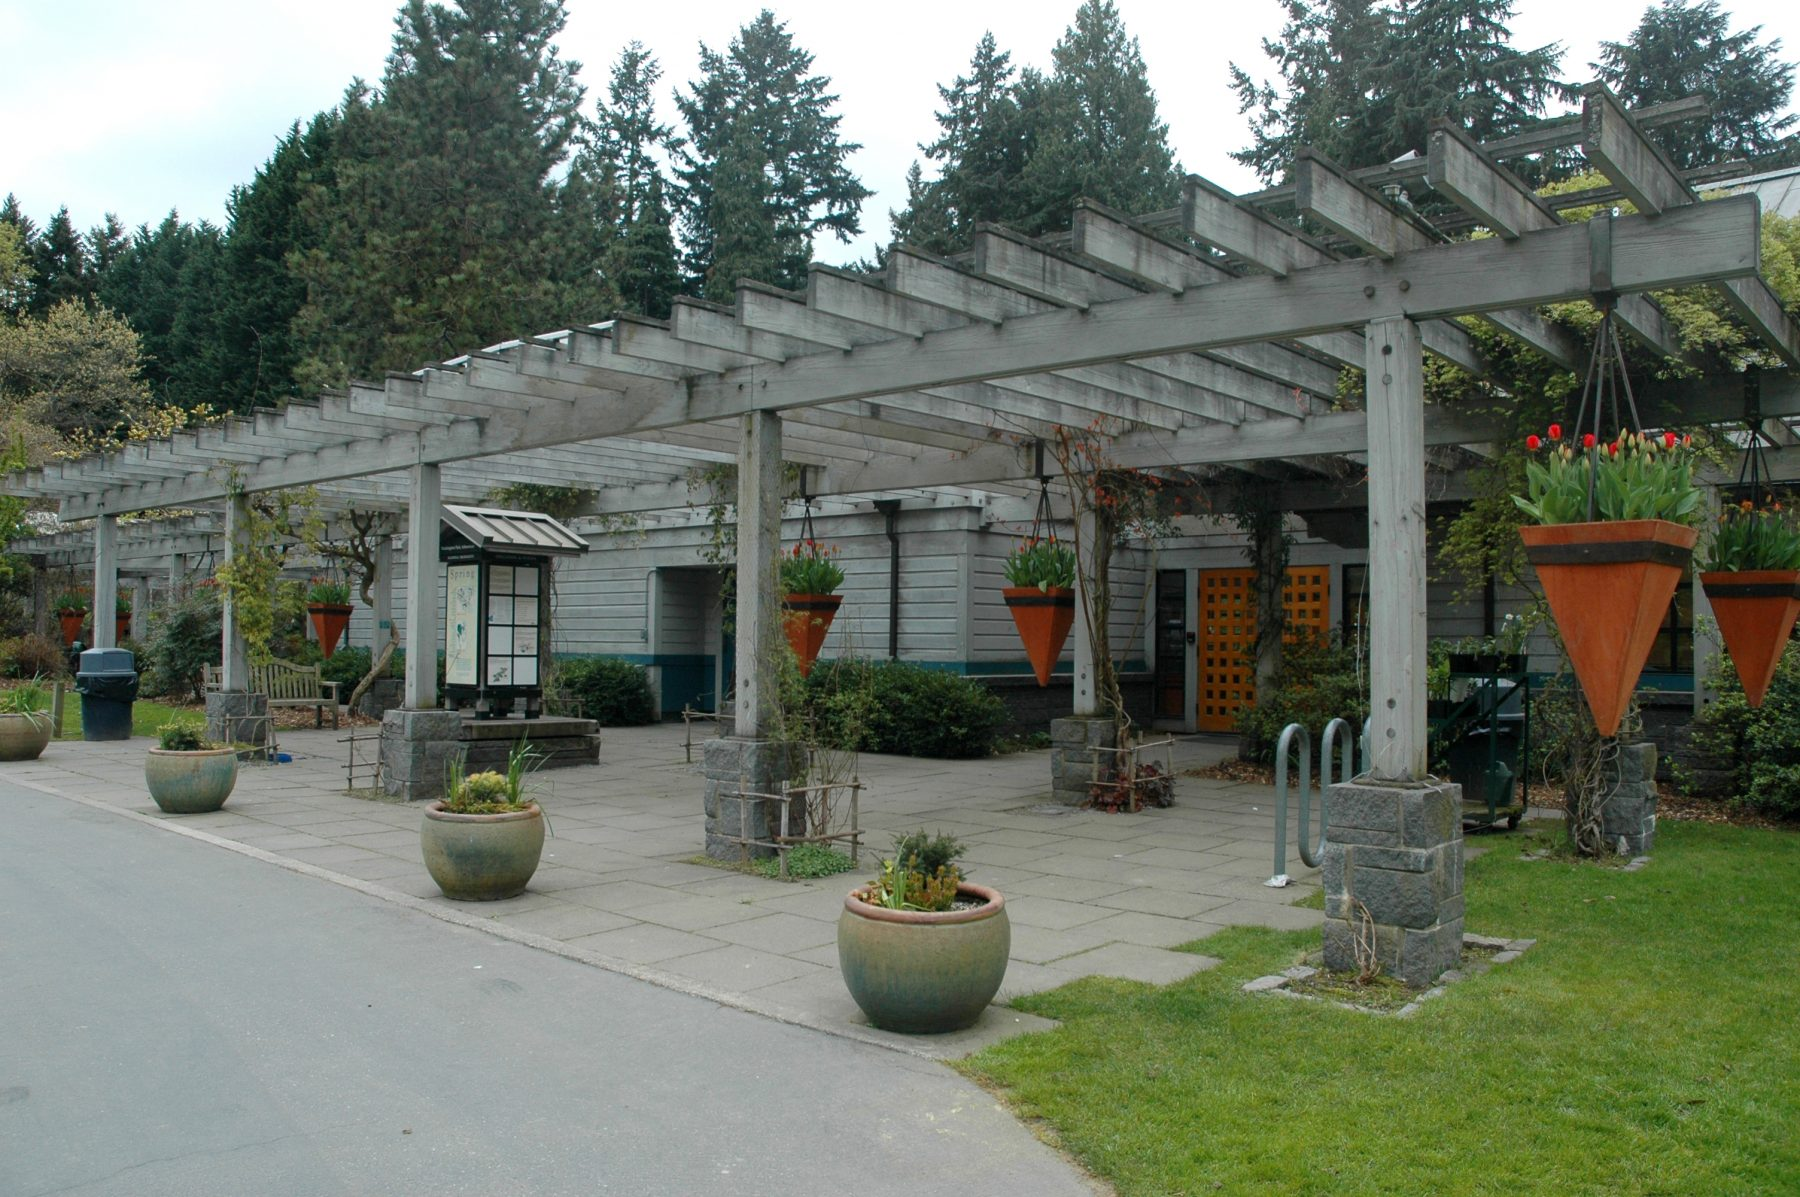 graham visitors center university of washington botanic gardens